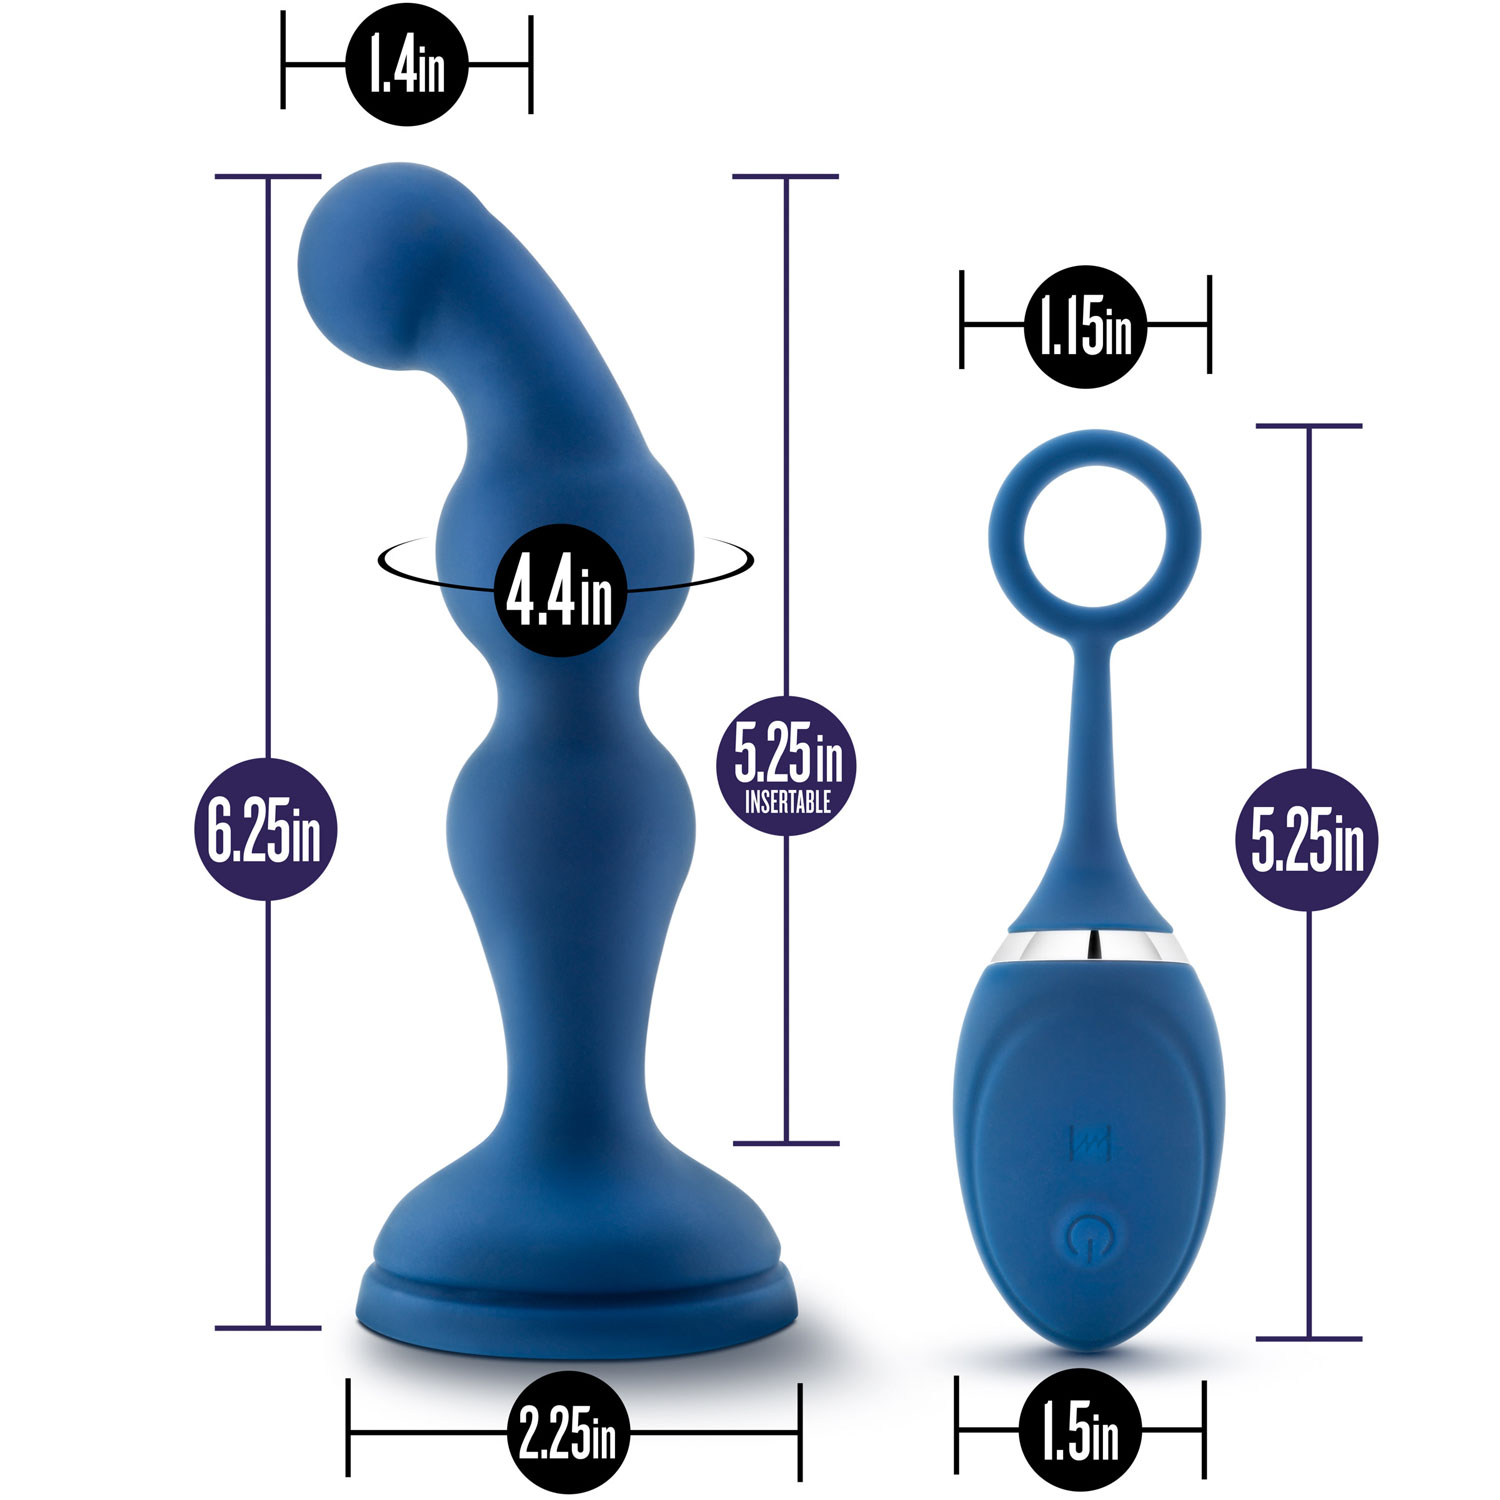 Performance Plus Cannon Rechargeable Prostate Massager - Measurements